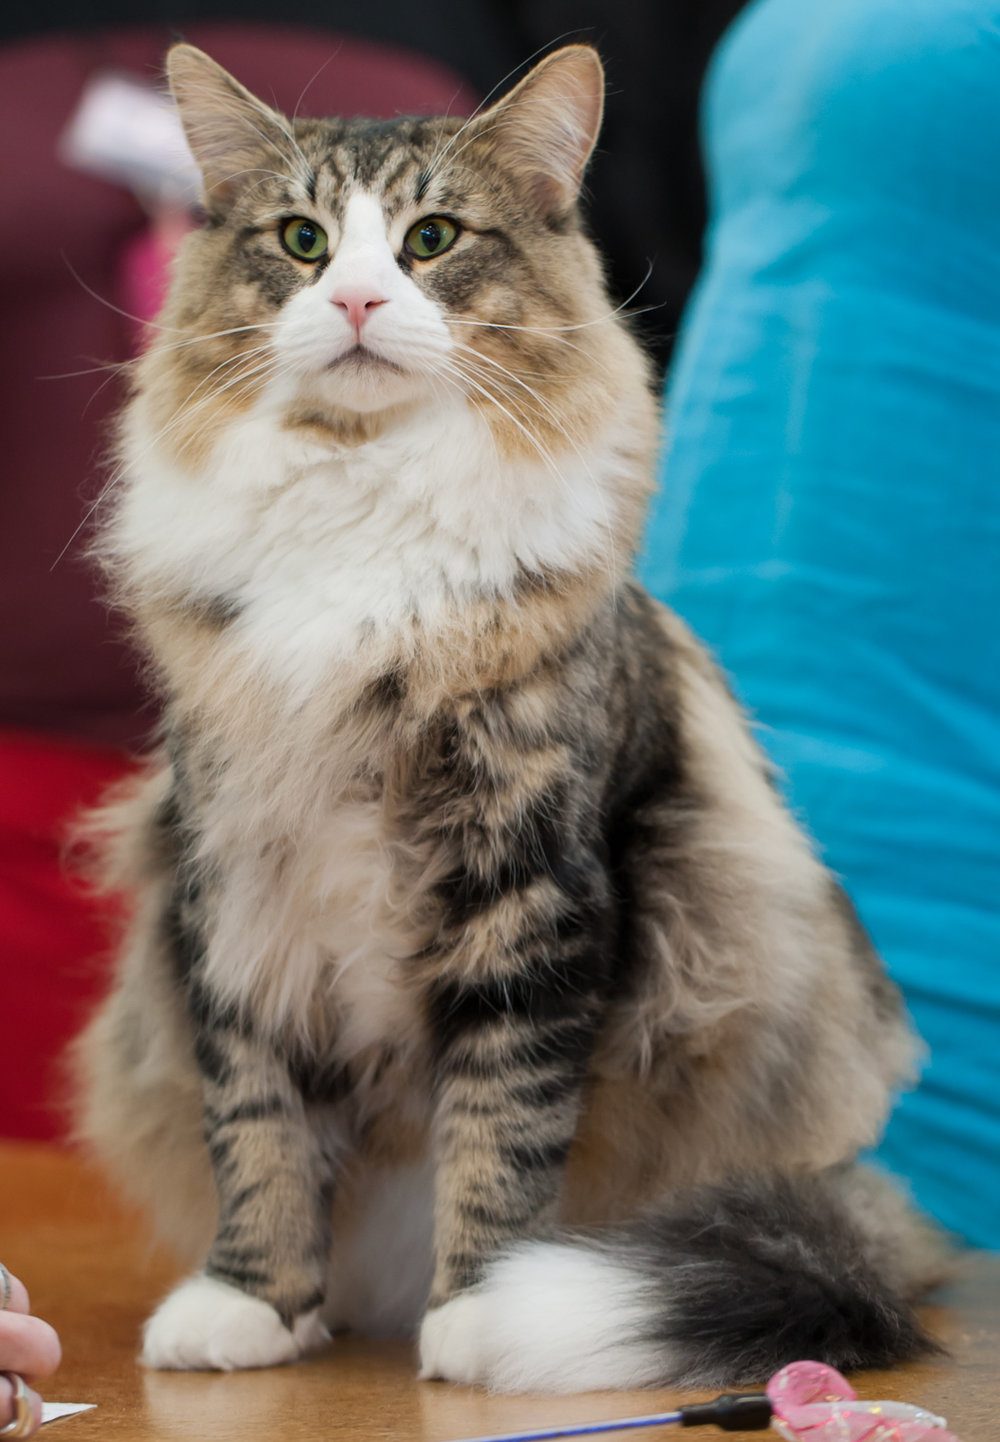 A brown tabby with tuxedo white markings.  From Heikki Siltala at catza.net.